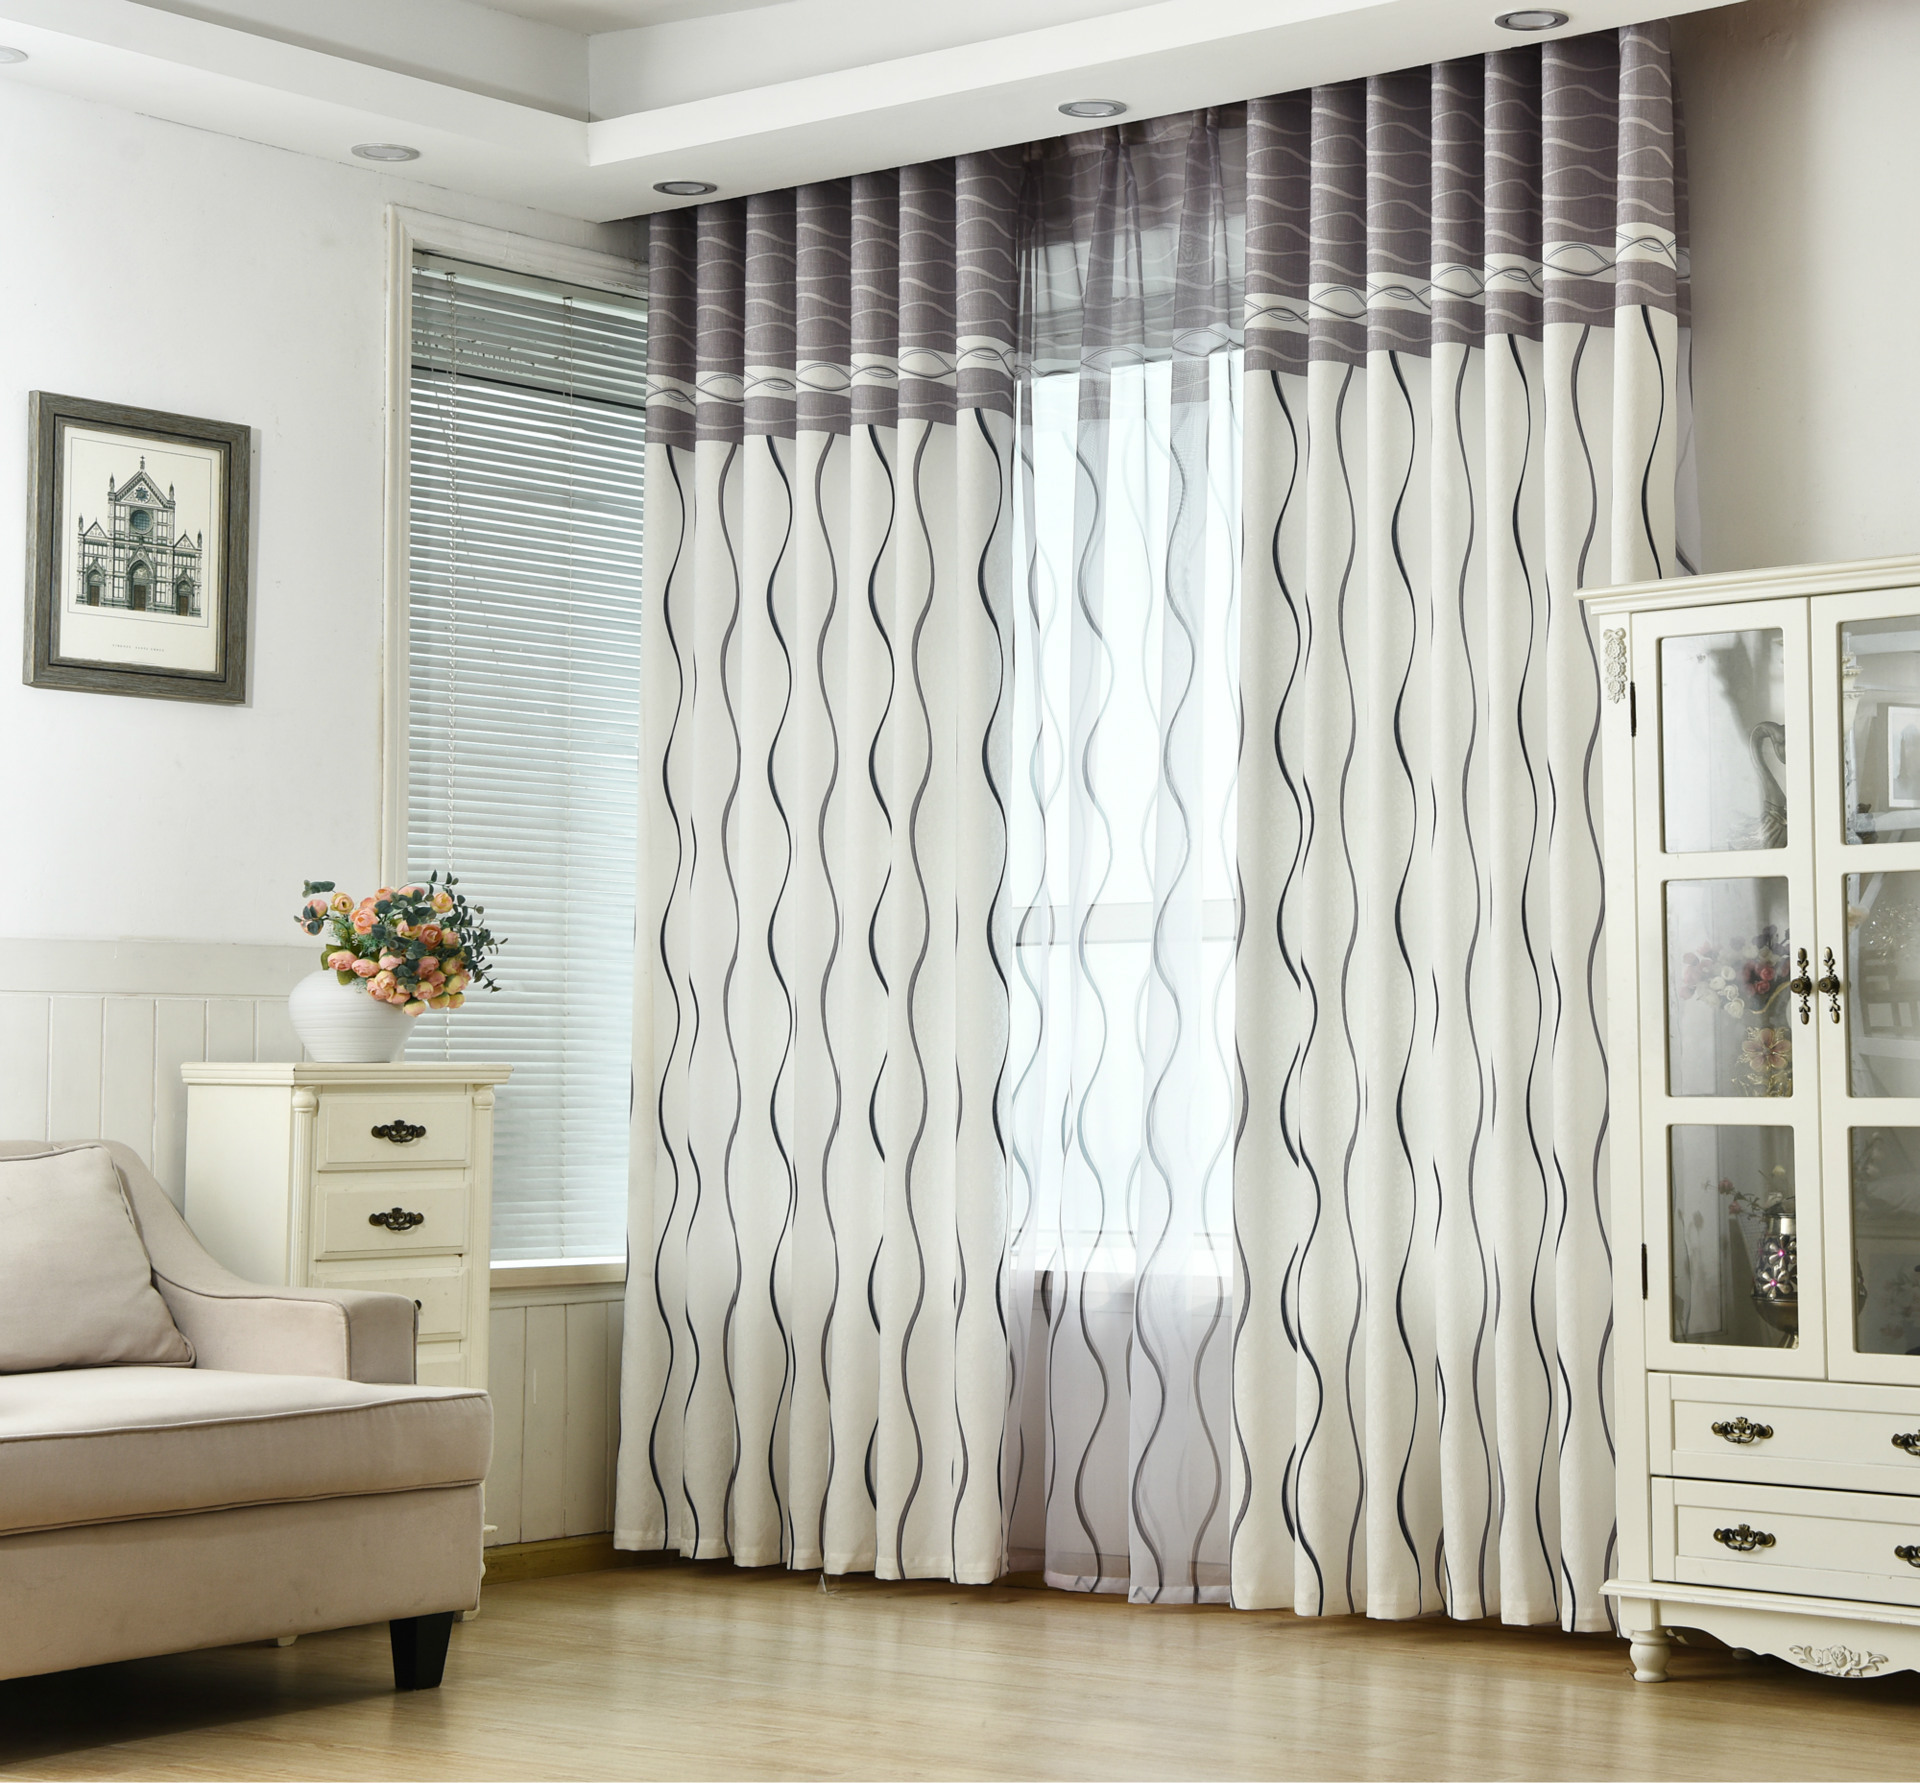 Classic Black And White Stripe Flat Environmental Protection Printing CurtainCurtains For Living Dining Room